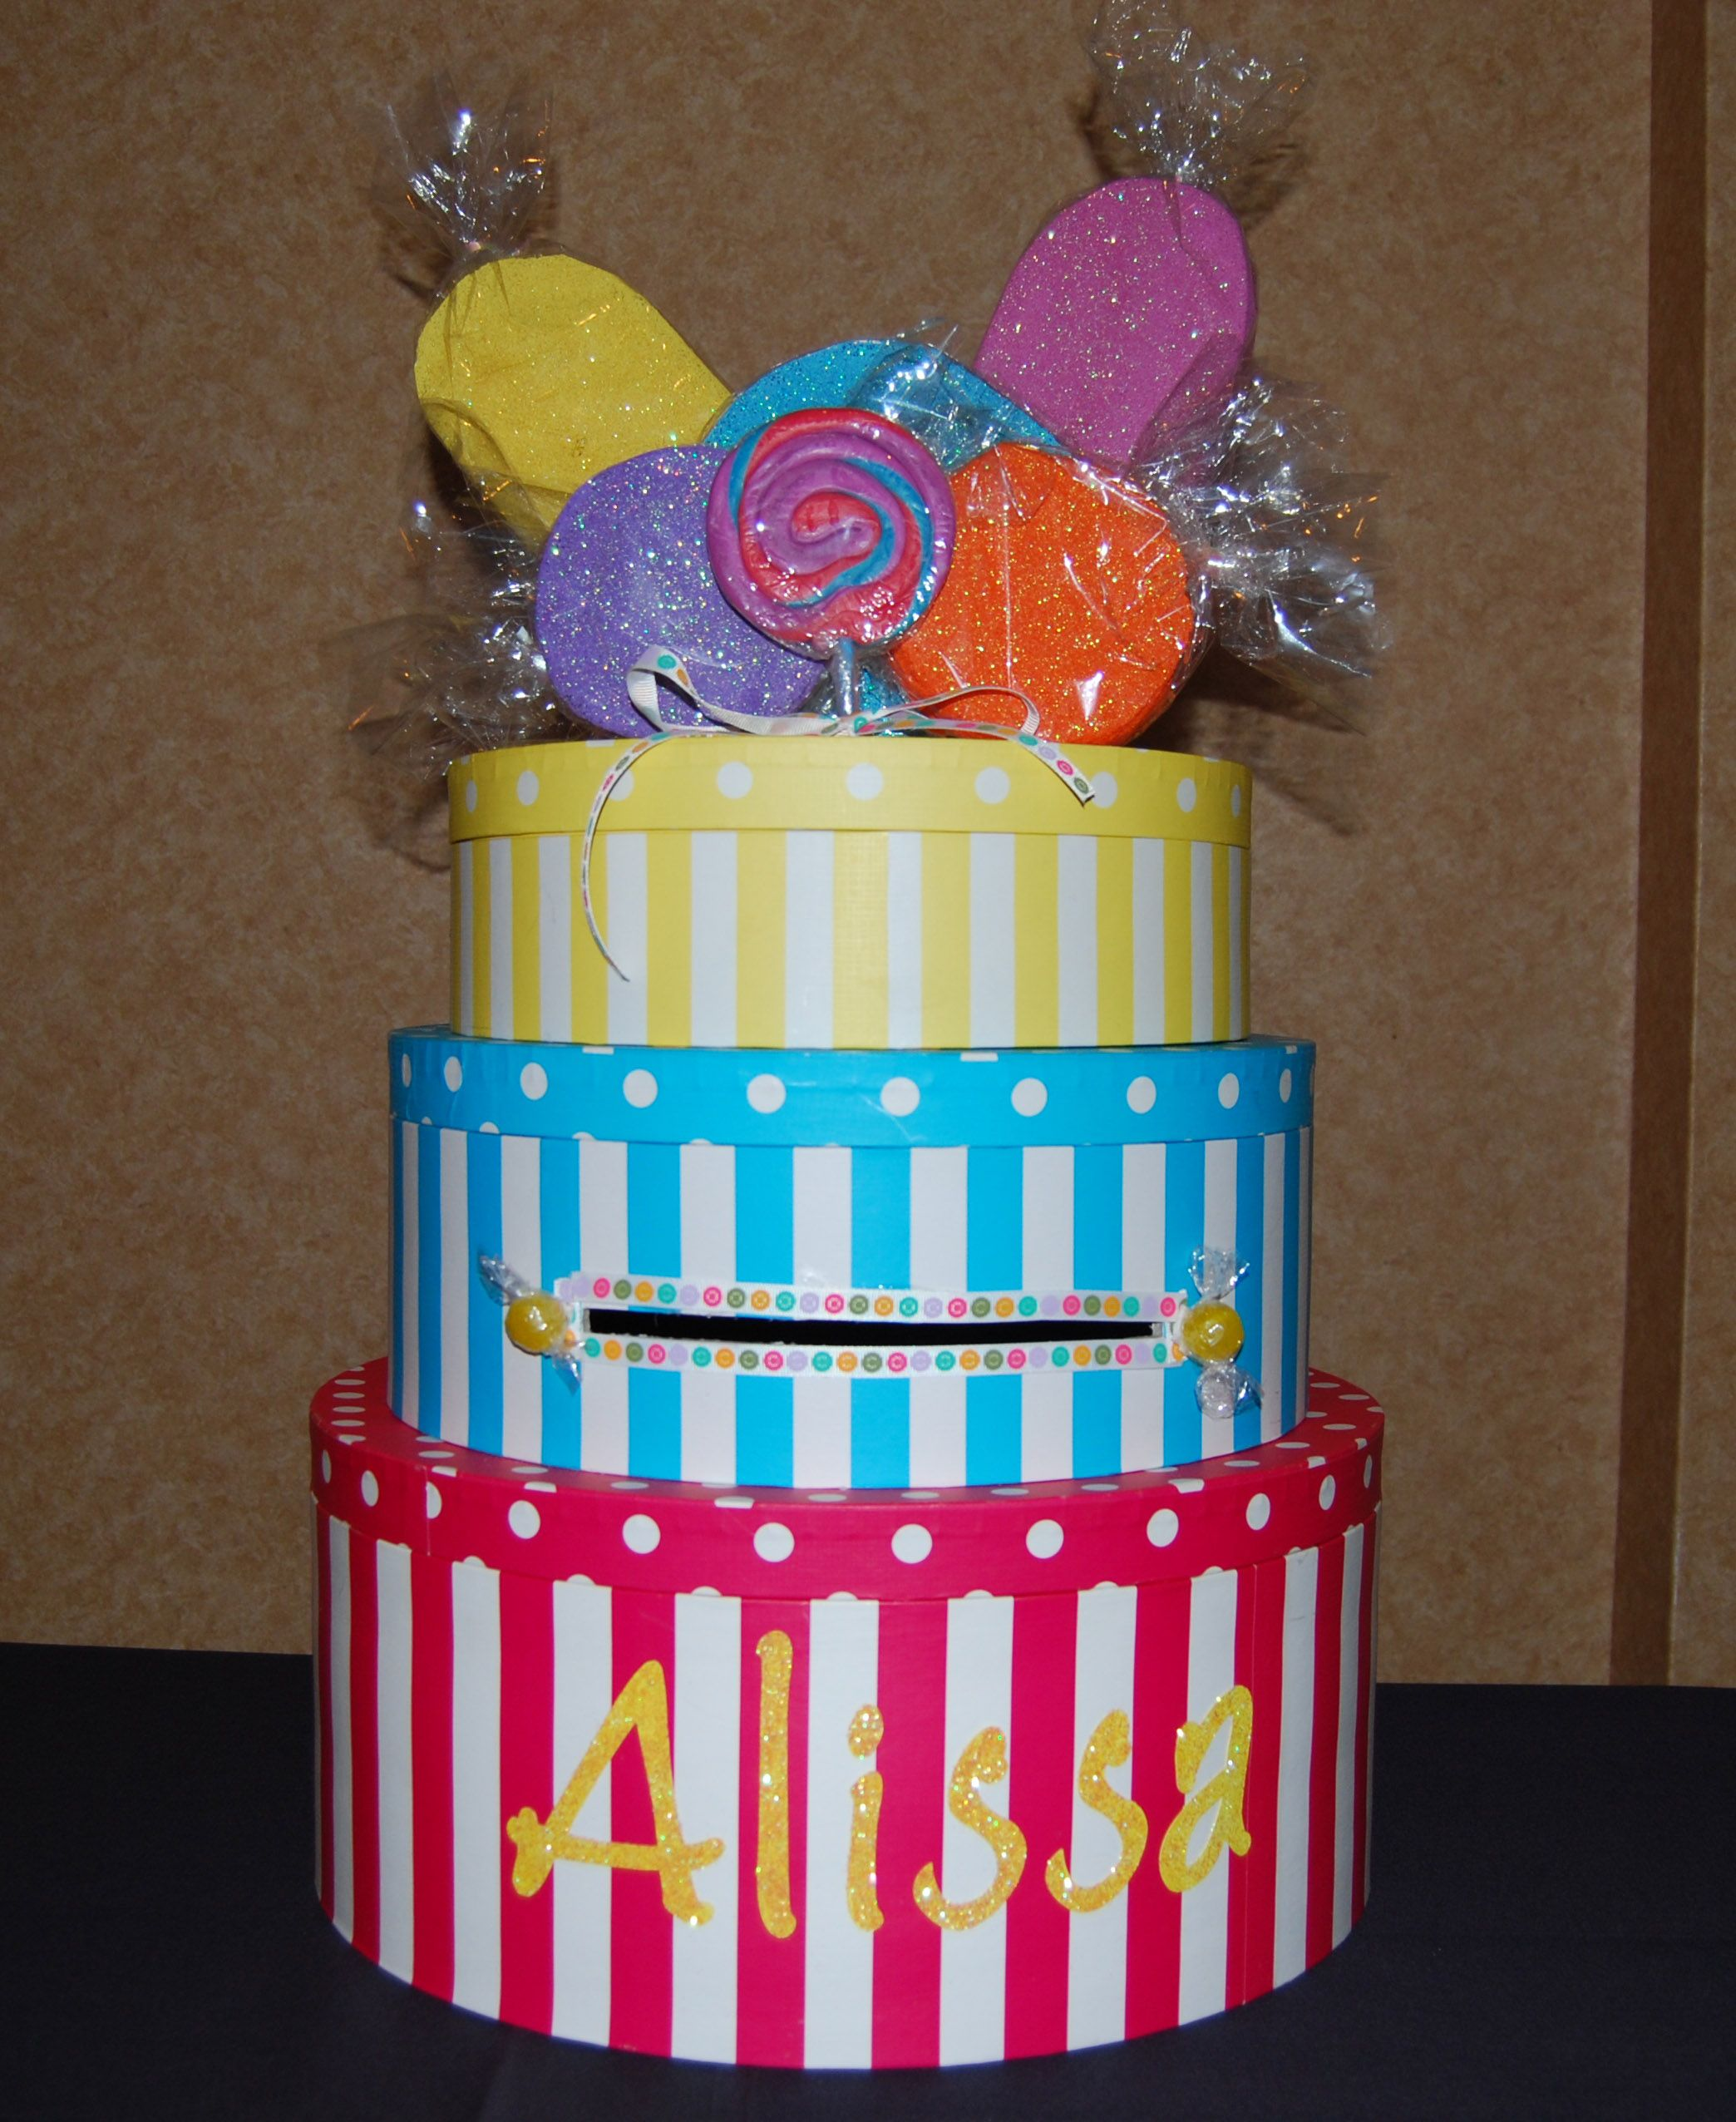 Candy theme bat mitzvah posted by party411events on jun